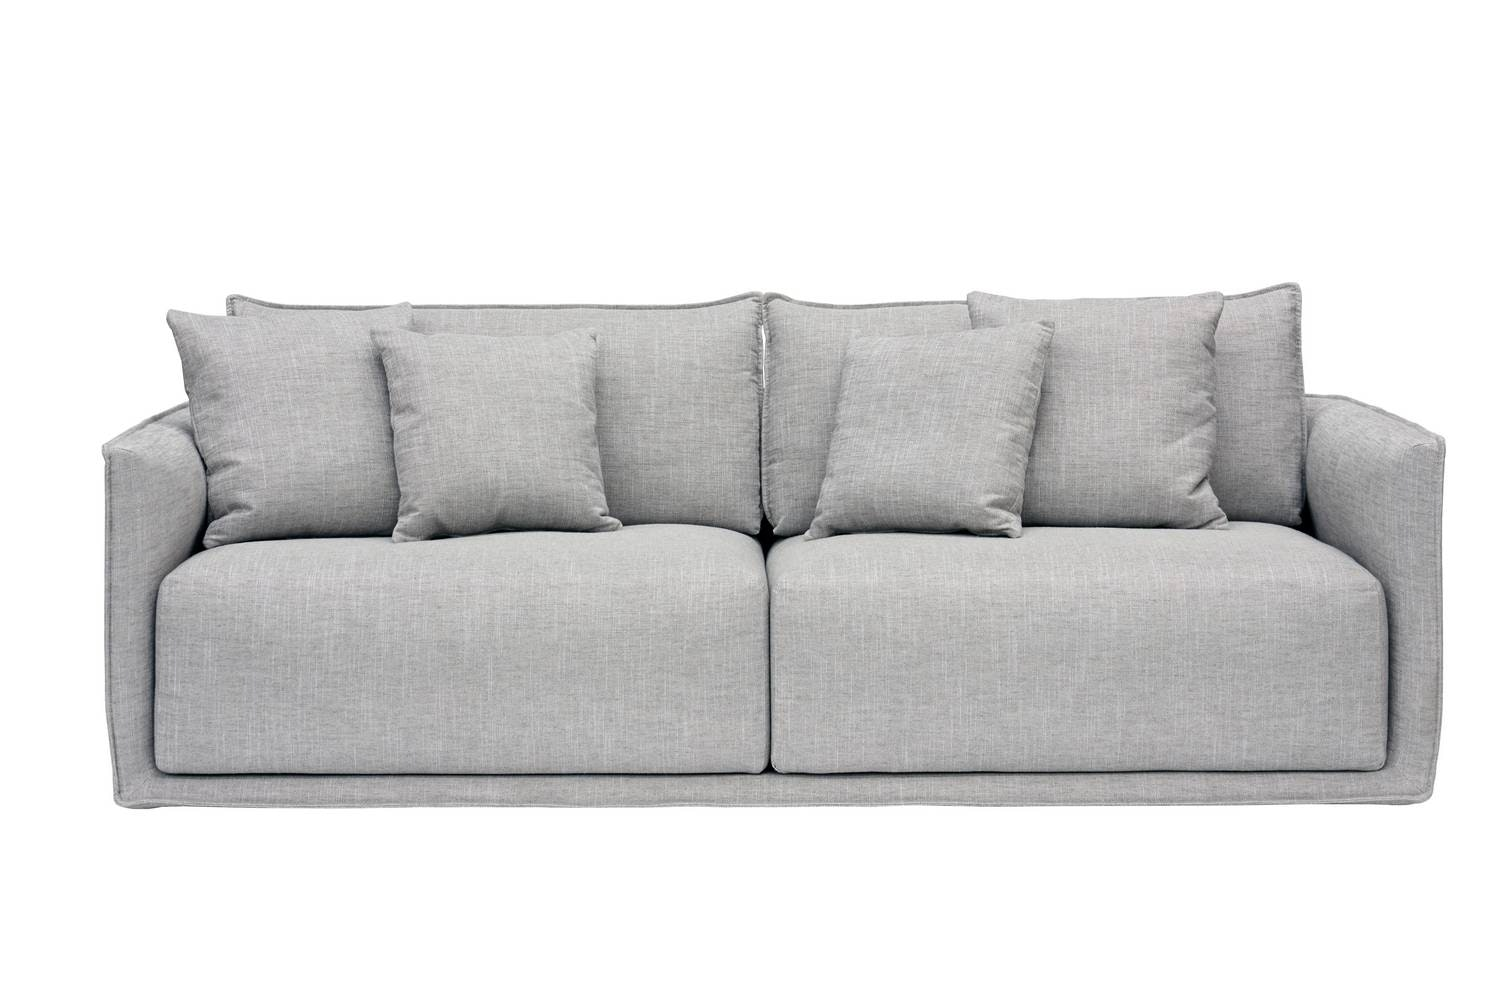 Max Sofa by Metrica for SP01